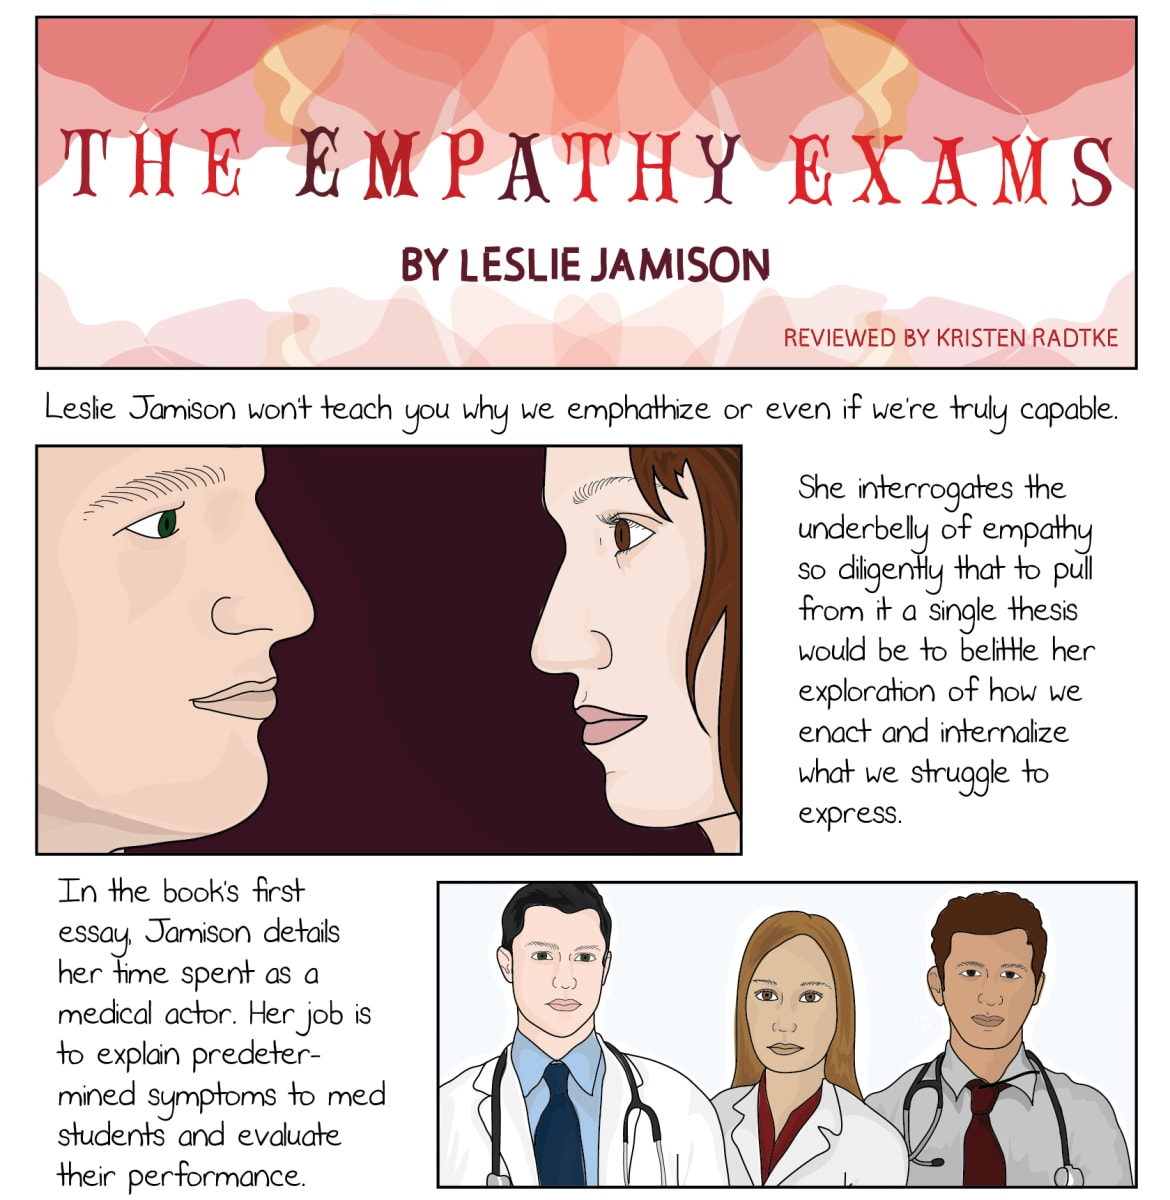 graphic novelist kristen radtke reviews leslie jamison s essays kristen radtke is a writer and illustrator she is the marketing and publicity director for sarabande books and is at work on a graphic memoir about modern